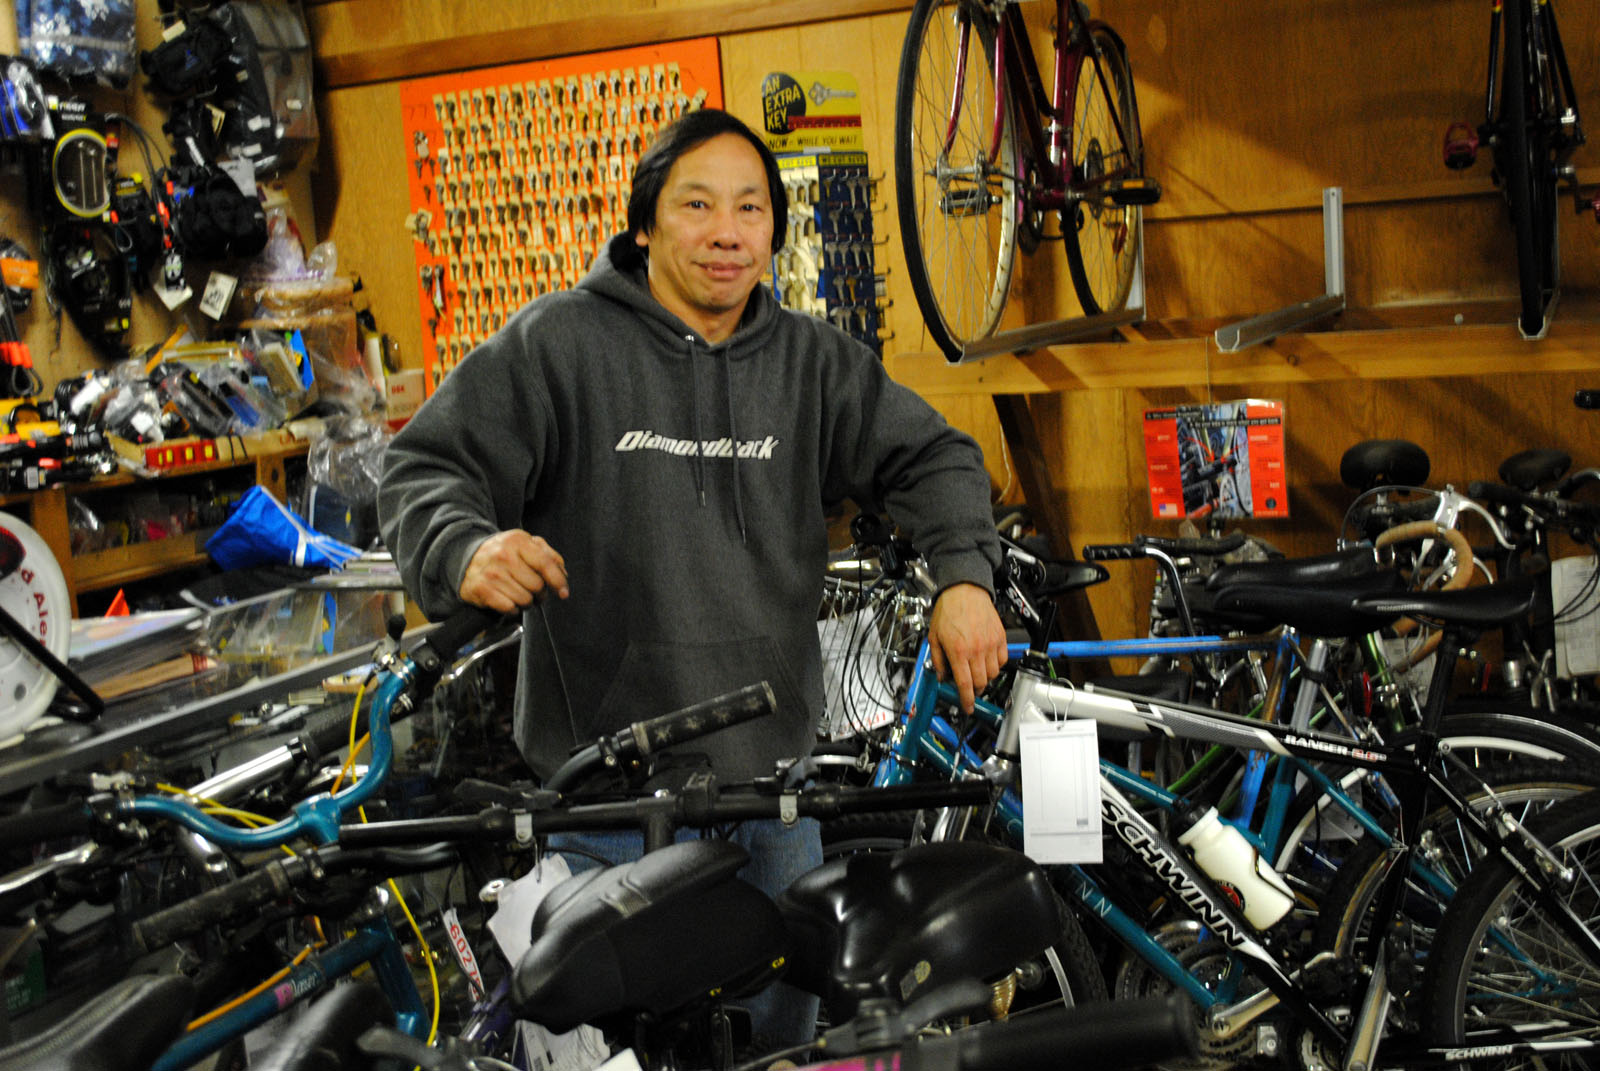 Bike Shop Sale At Pioneer Bicycles A Focus On Bike Fixes Not Sales Oakland North